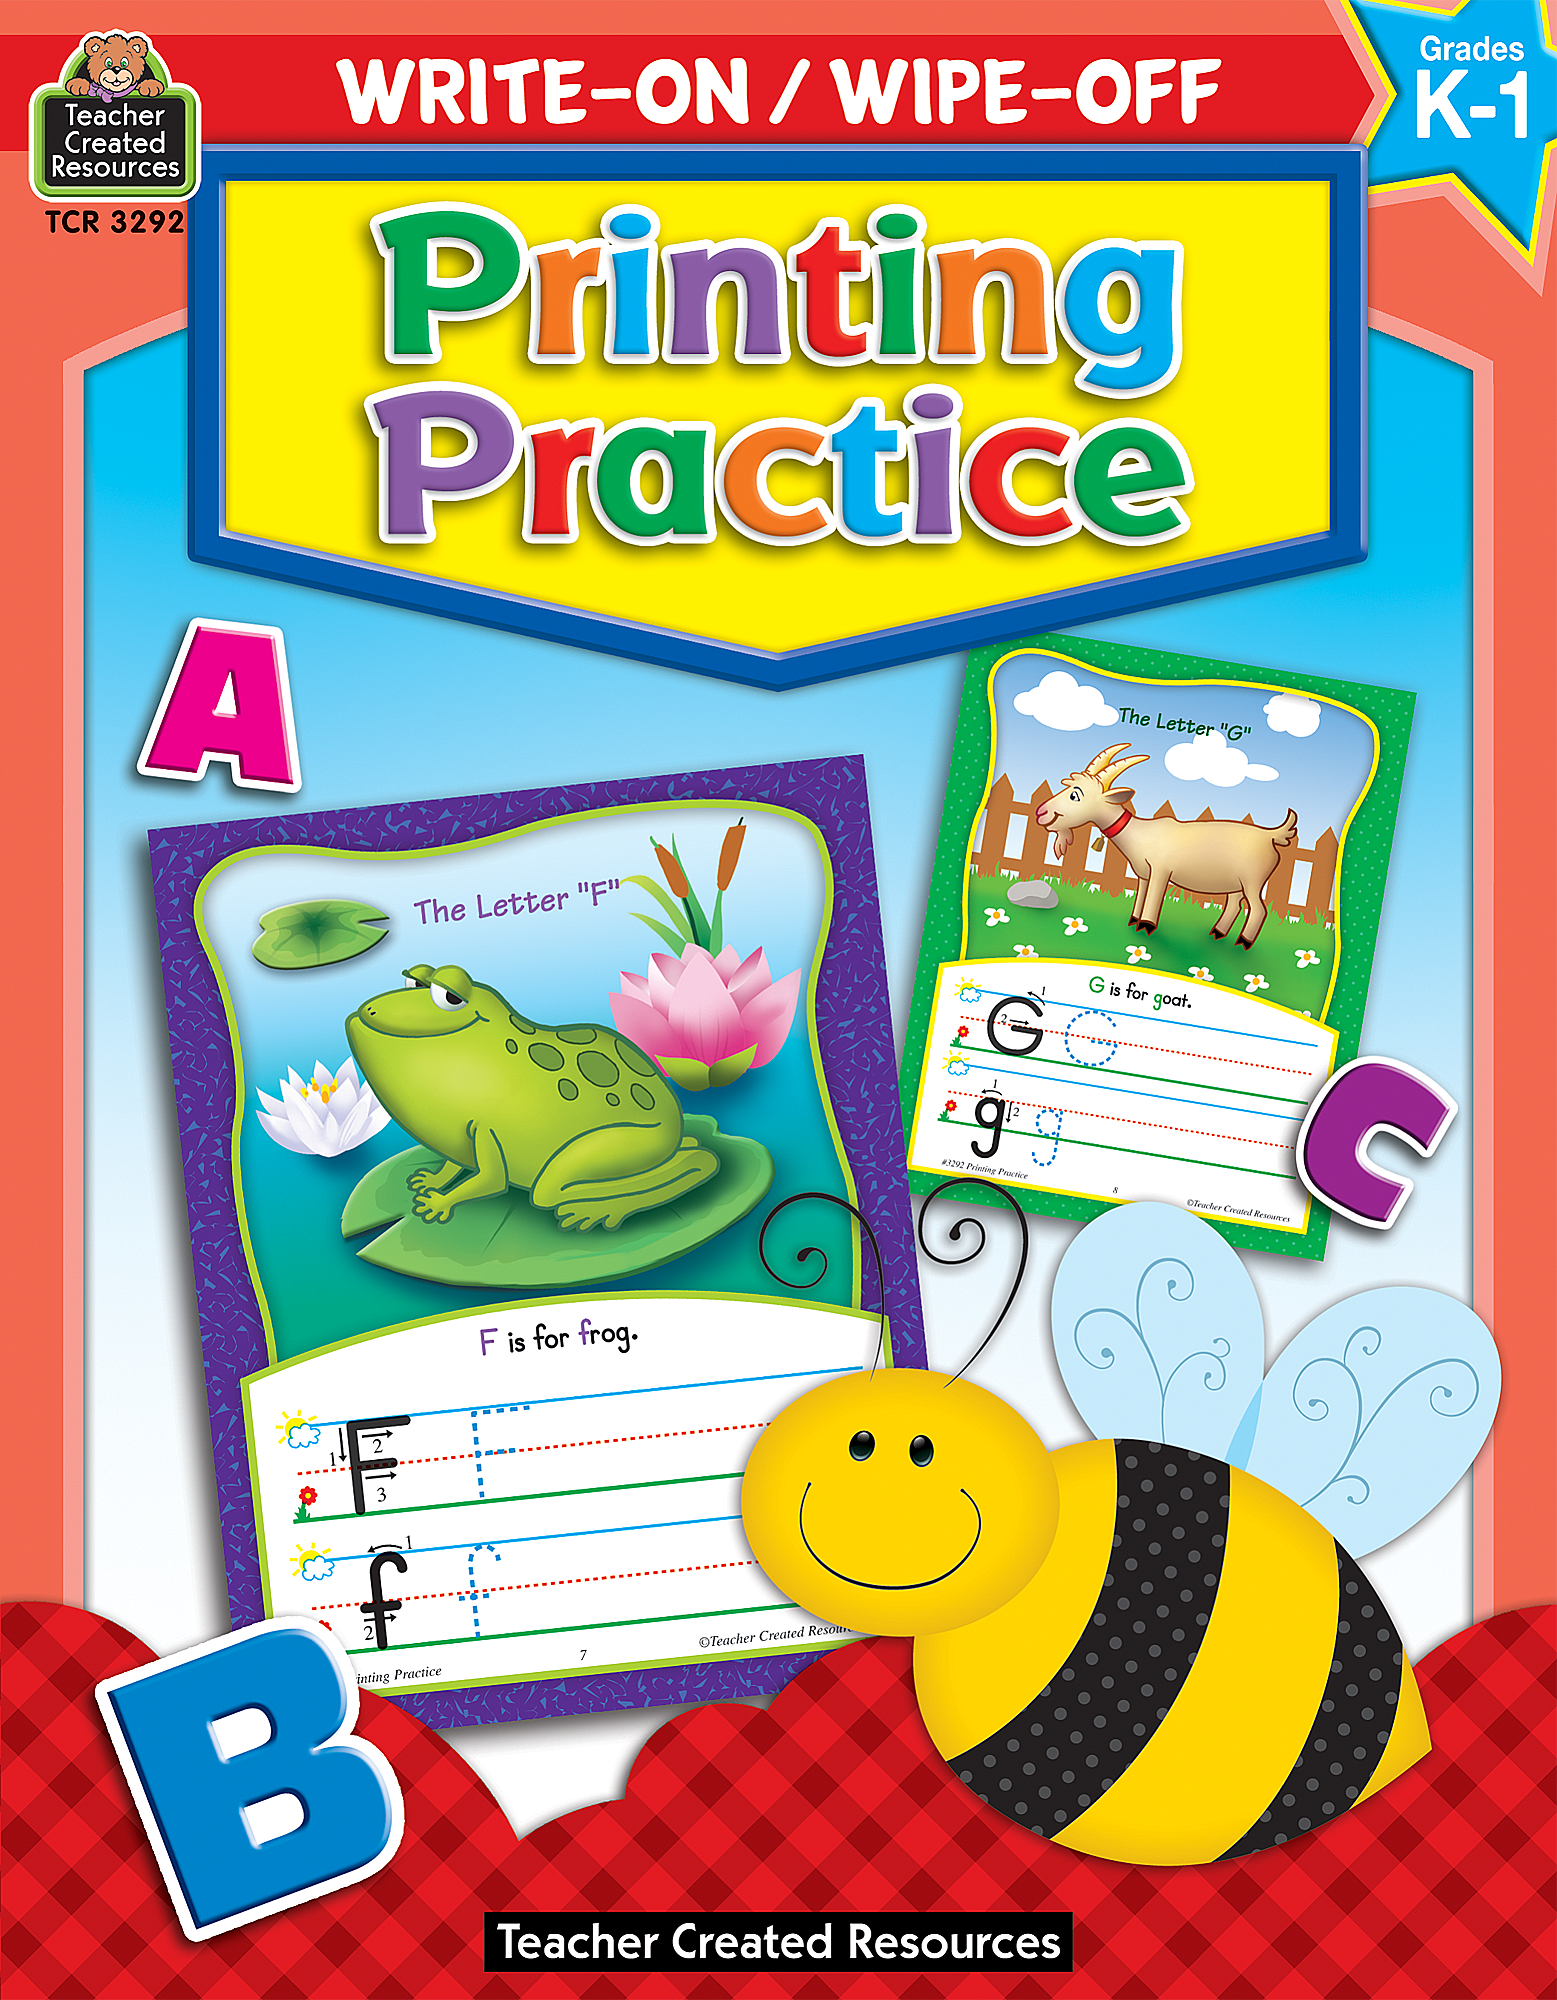 Write-On/Wipe-Off: Printing Practice